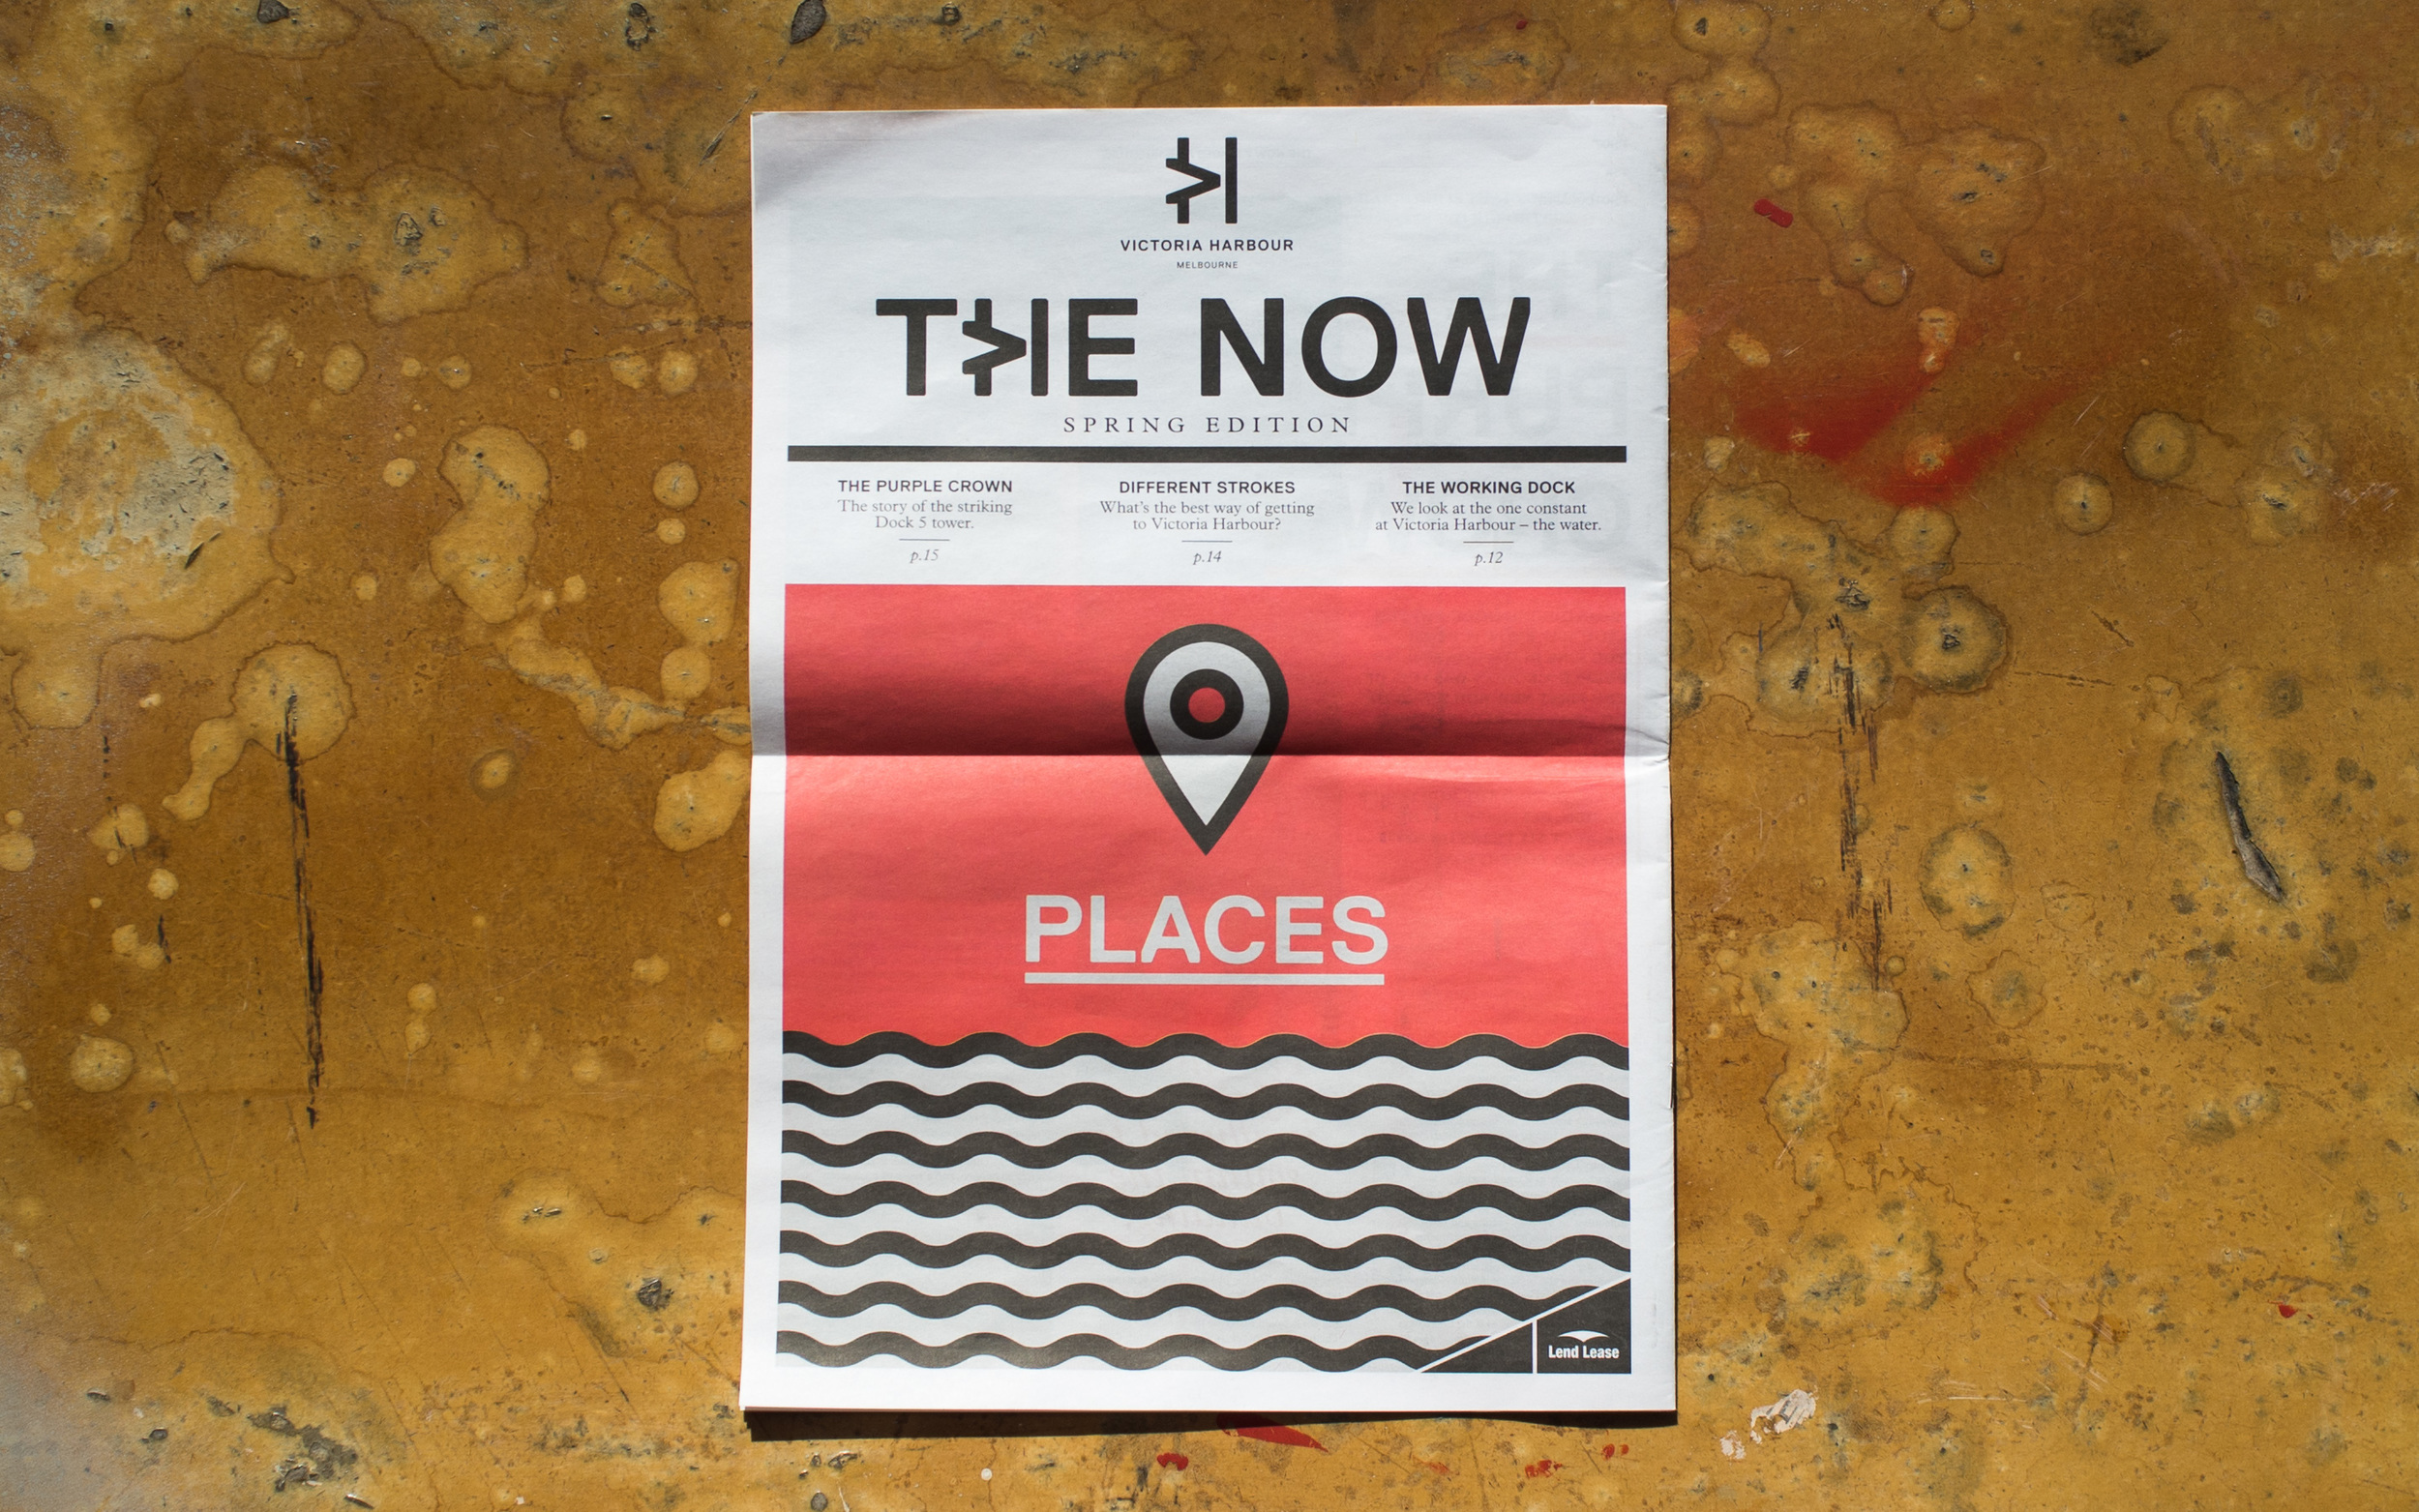 Victoria Harbour - The Now